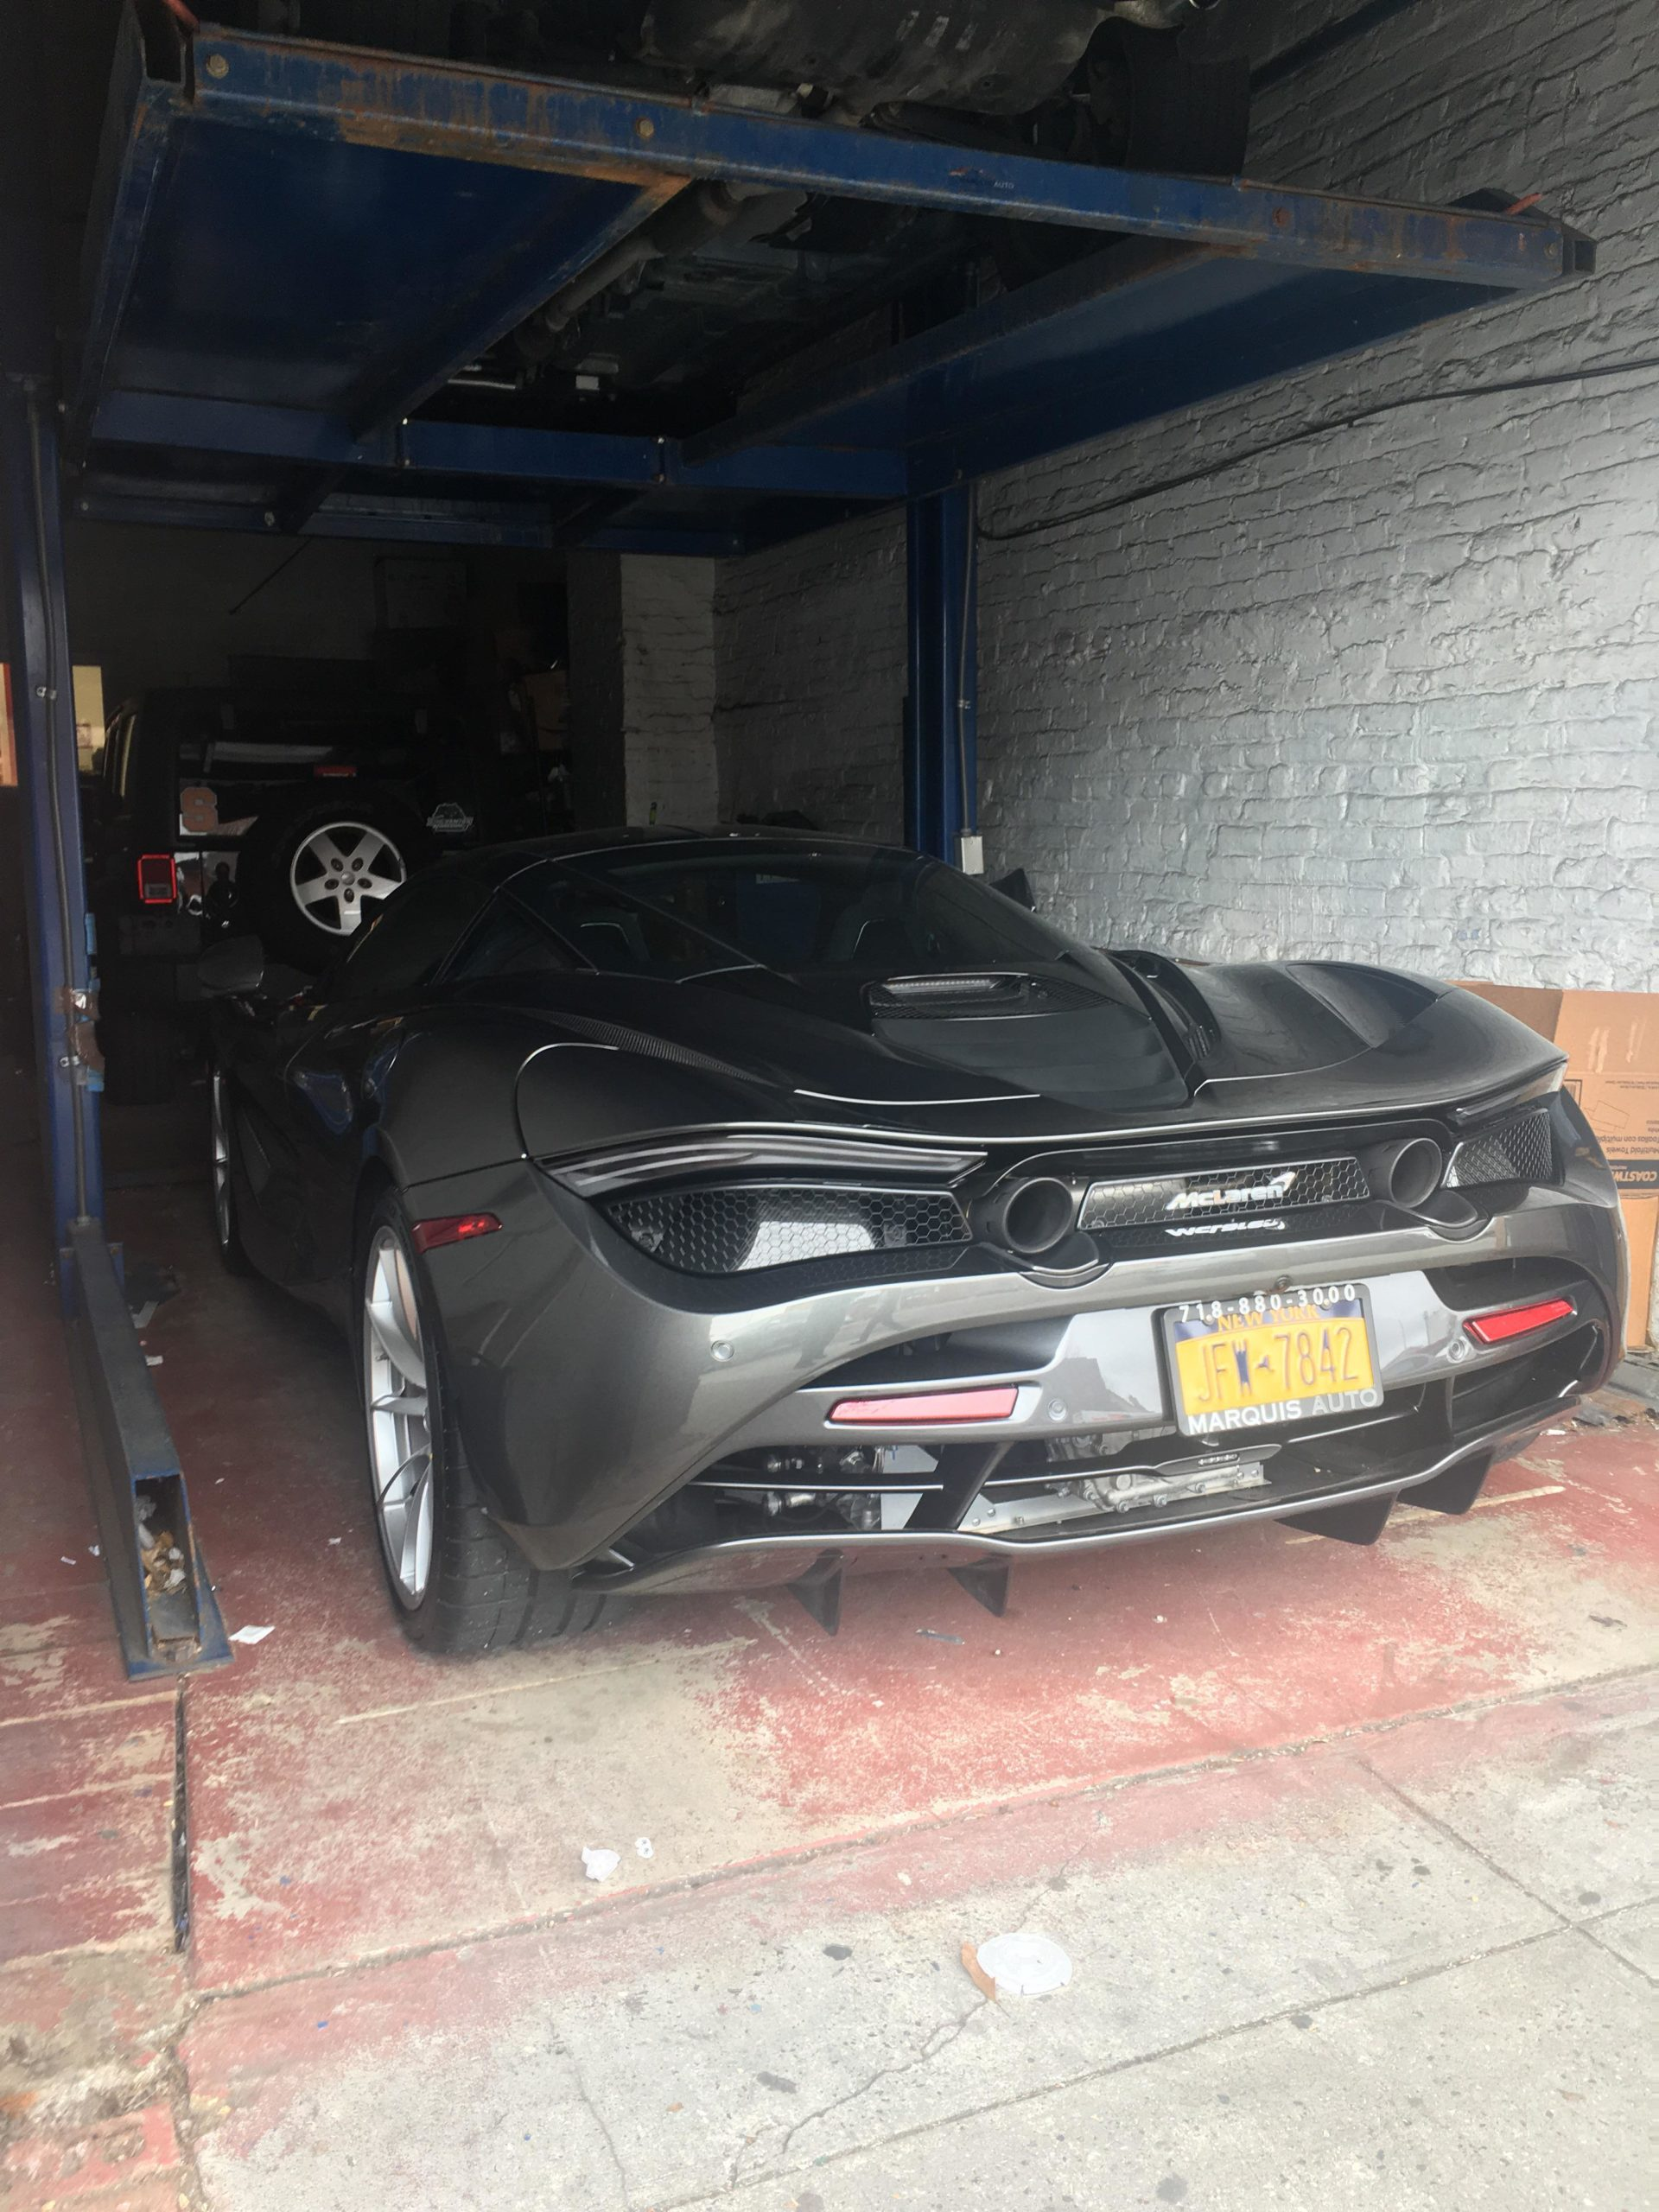 Spotted this McLaren 720S in Brooklyn, New York.